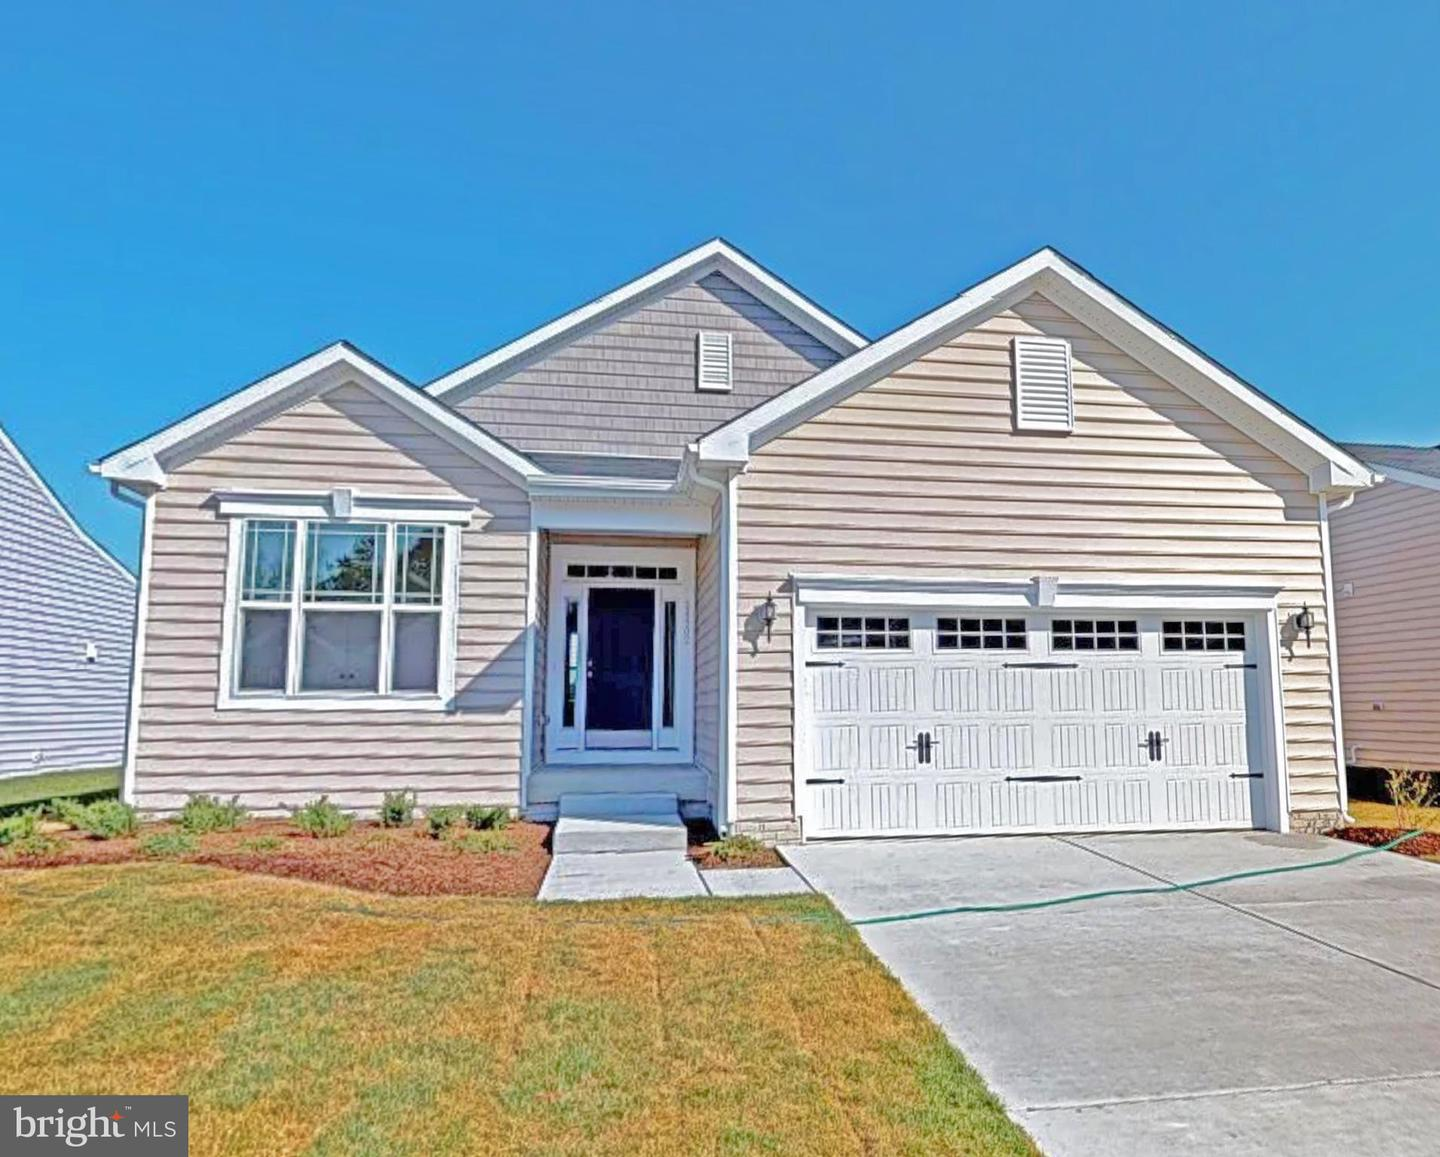 View this Lewes, Delaware Listing - Real Estate and Home Sales